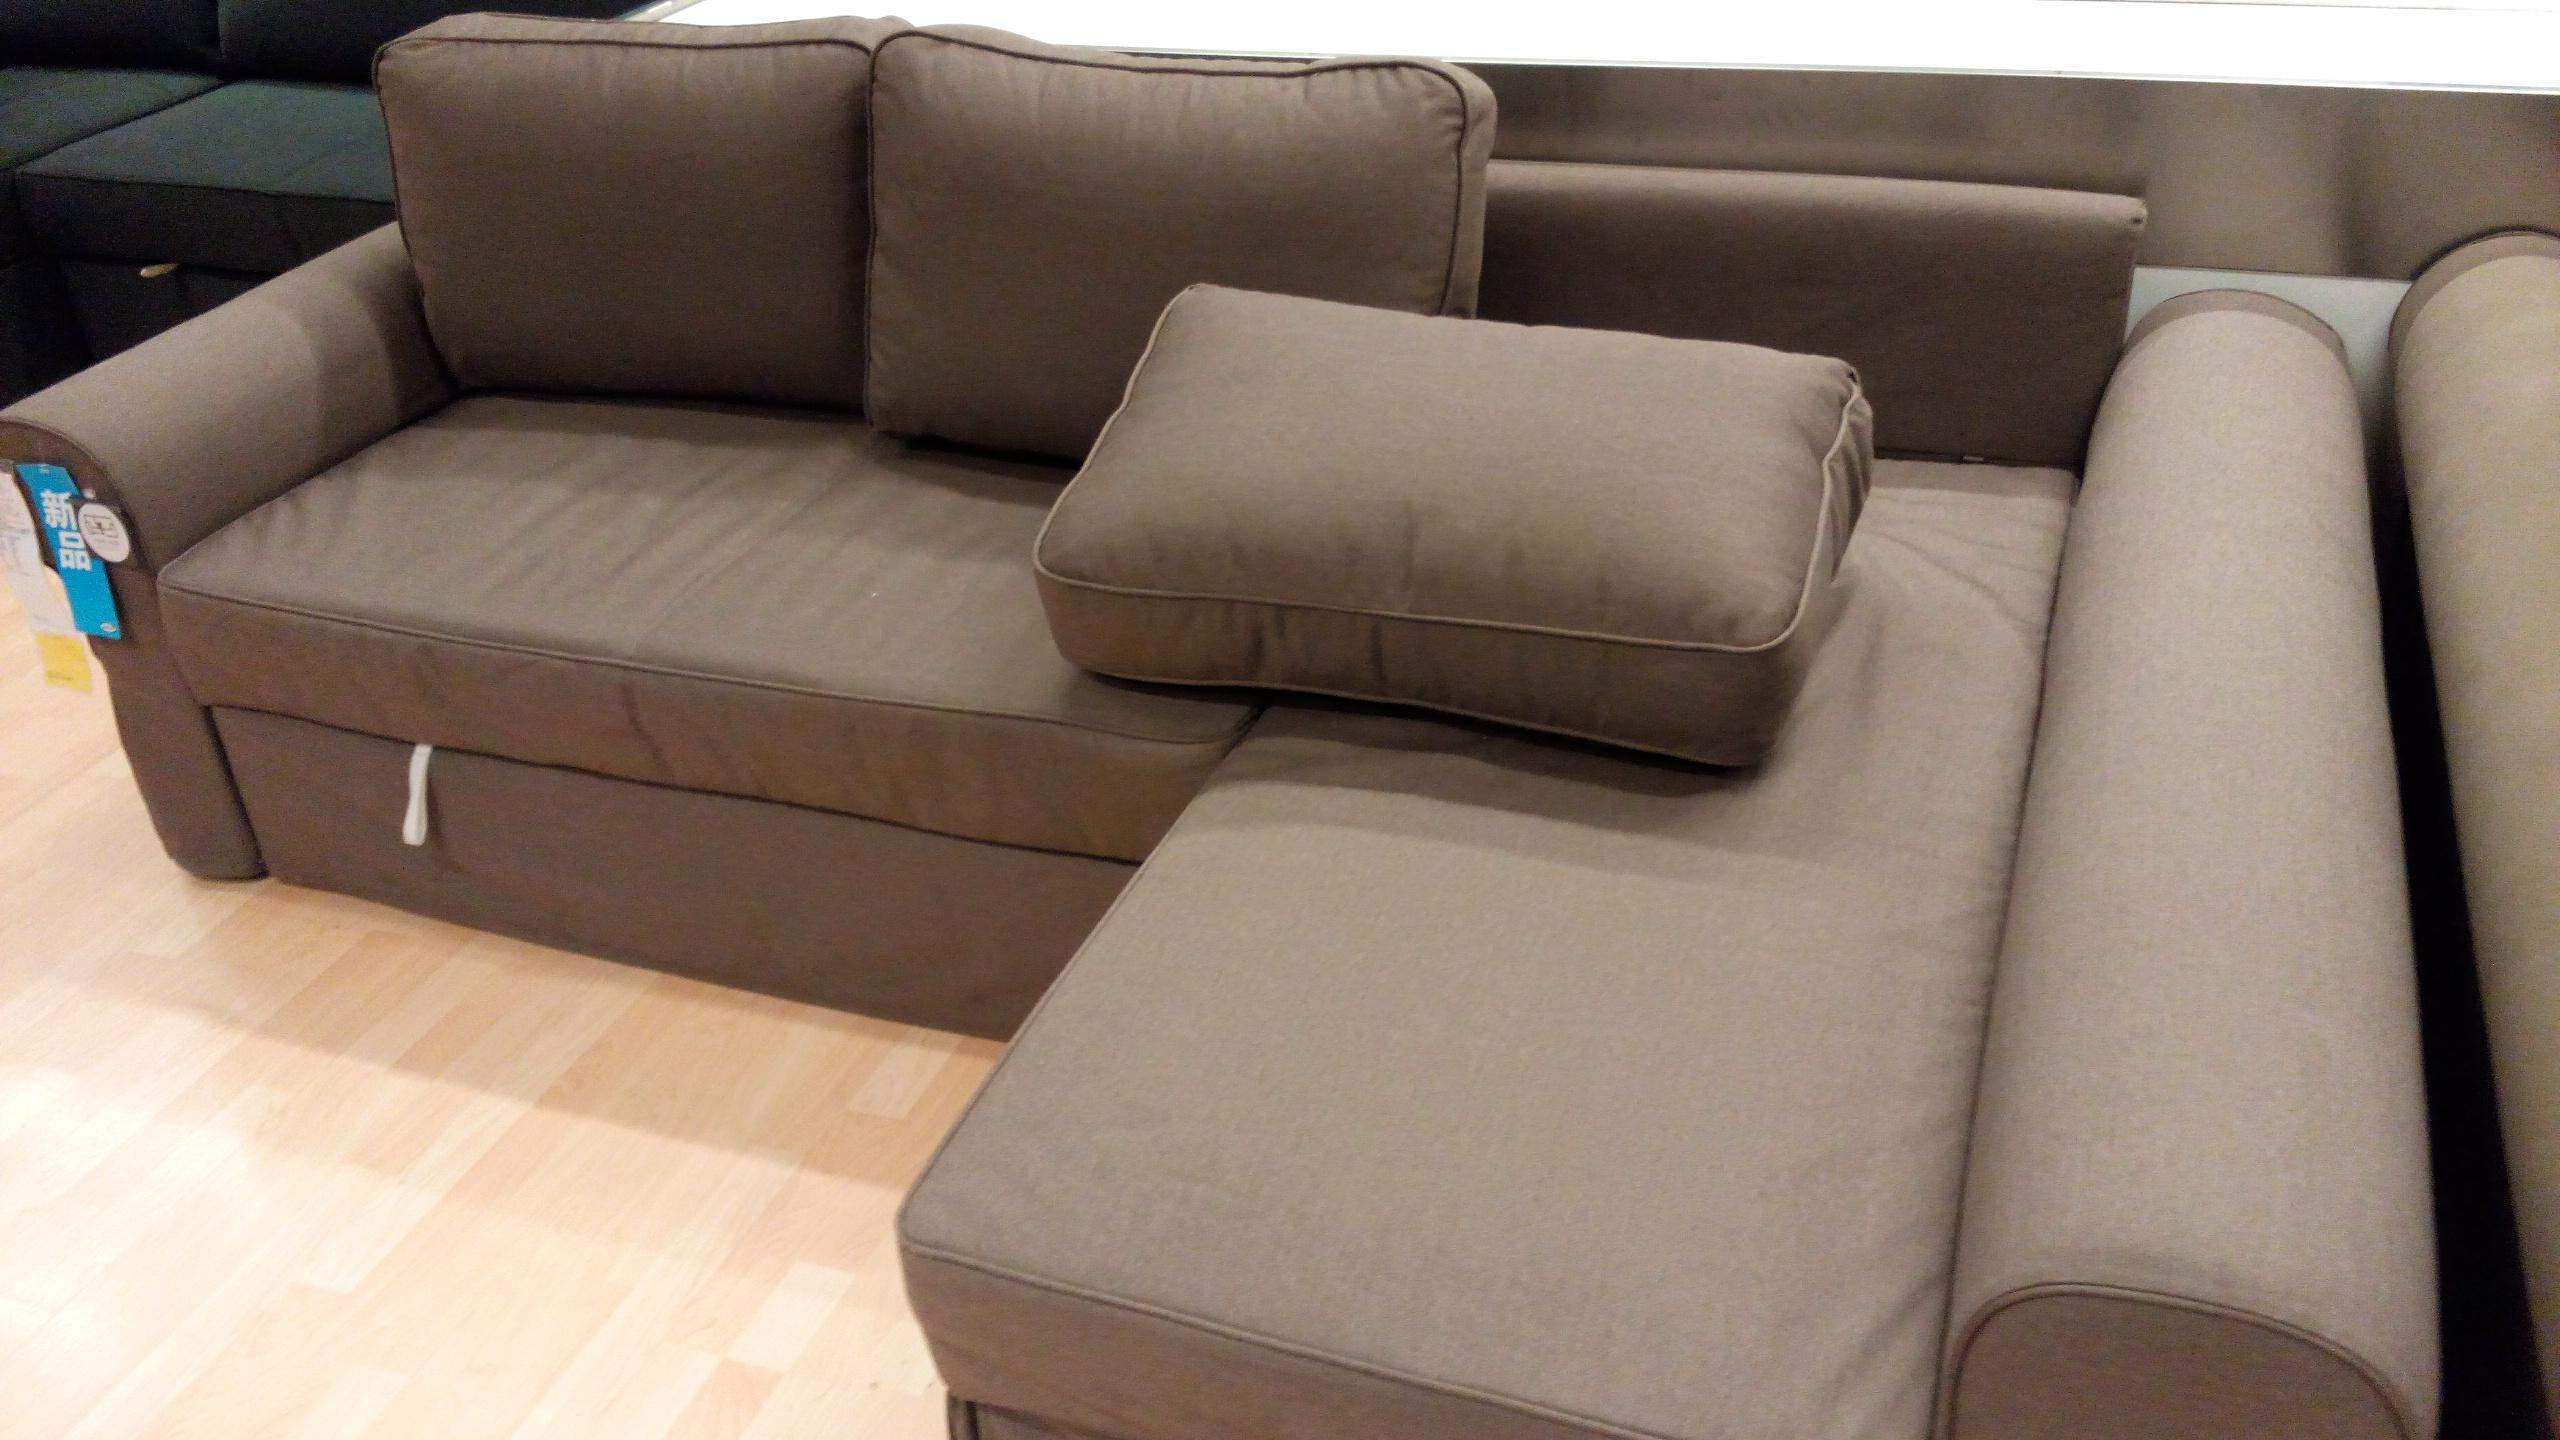 Ikea Vilasund And Backabro Review – Return Of The Sofa Bed Clones! Throughout Storage Sofa Ikea (View 17 of 20)